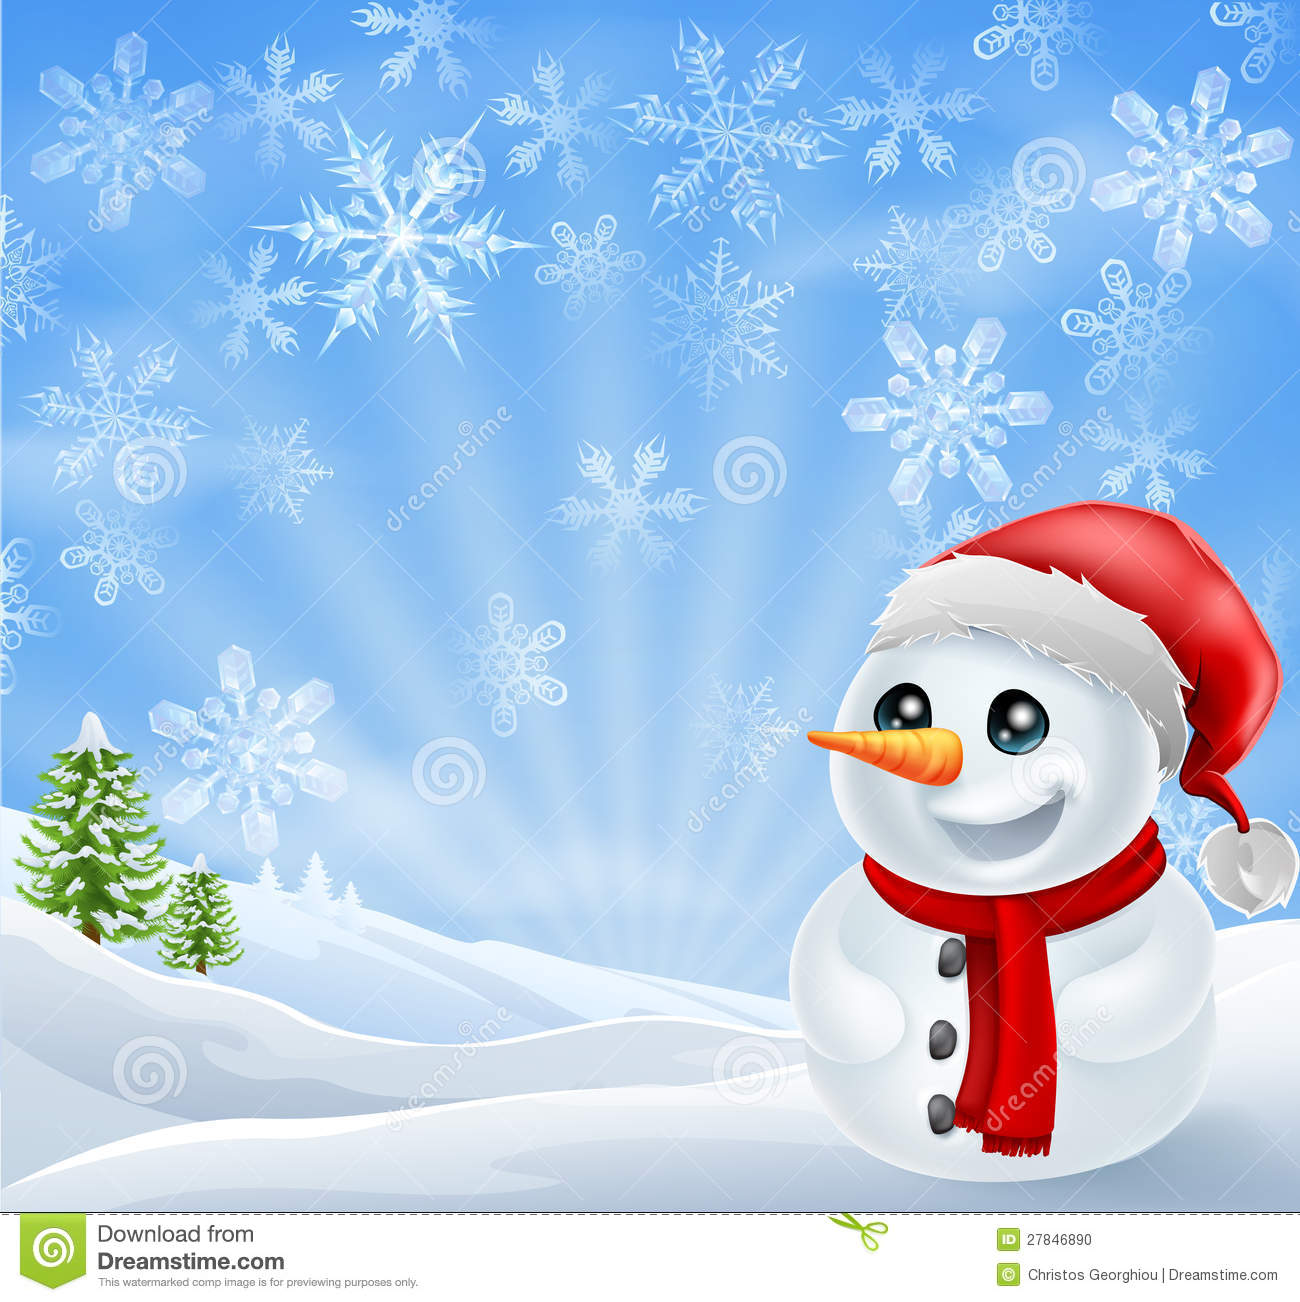 Christmas Snowman In Snowy Scene Stock Photo - Image: 27846890